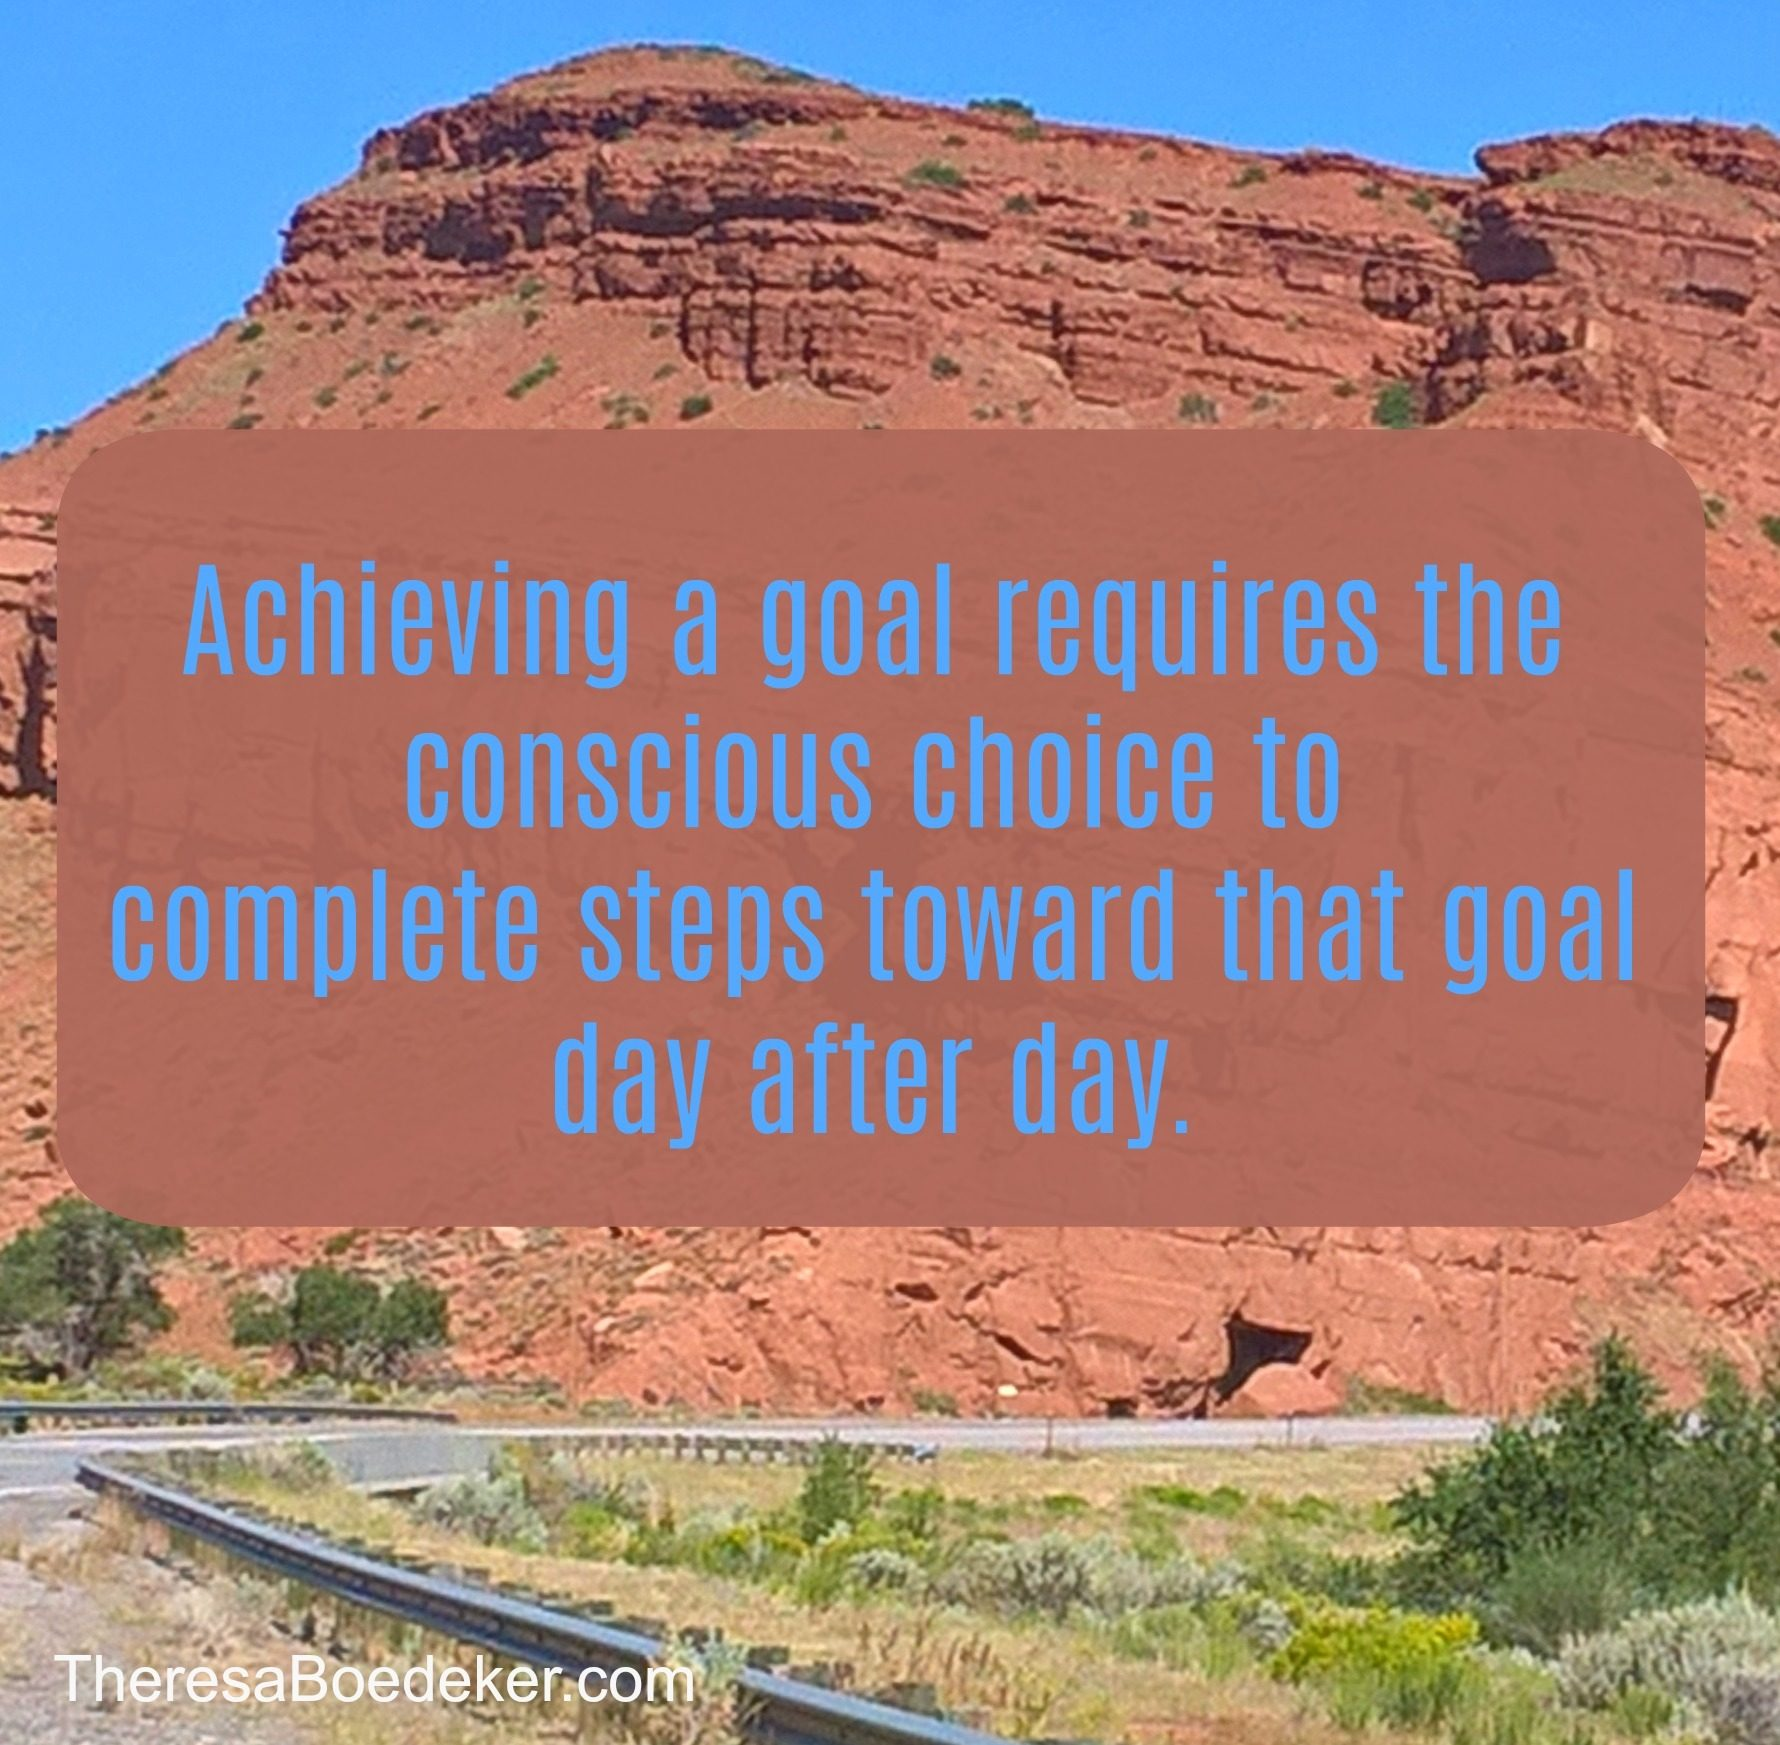 Achieving a goal requires the conscious choice to complete steps toward that goal day after day.